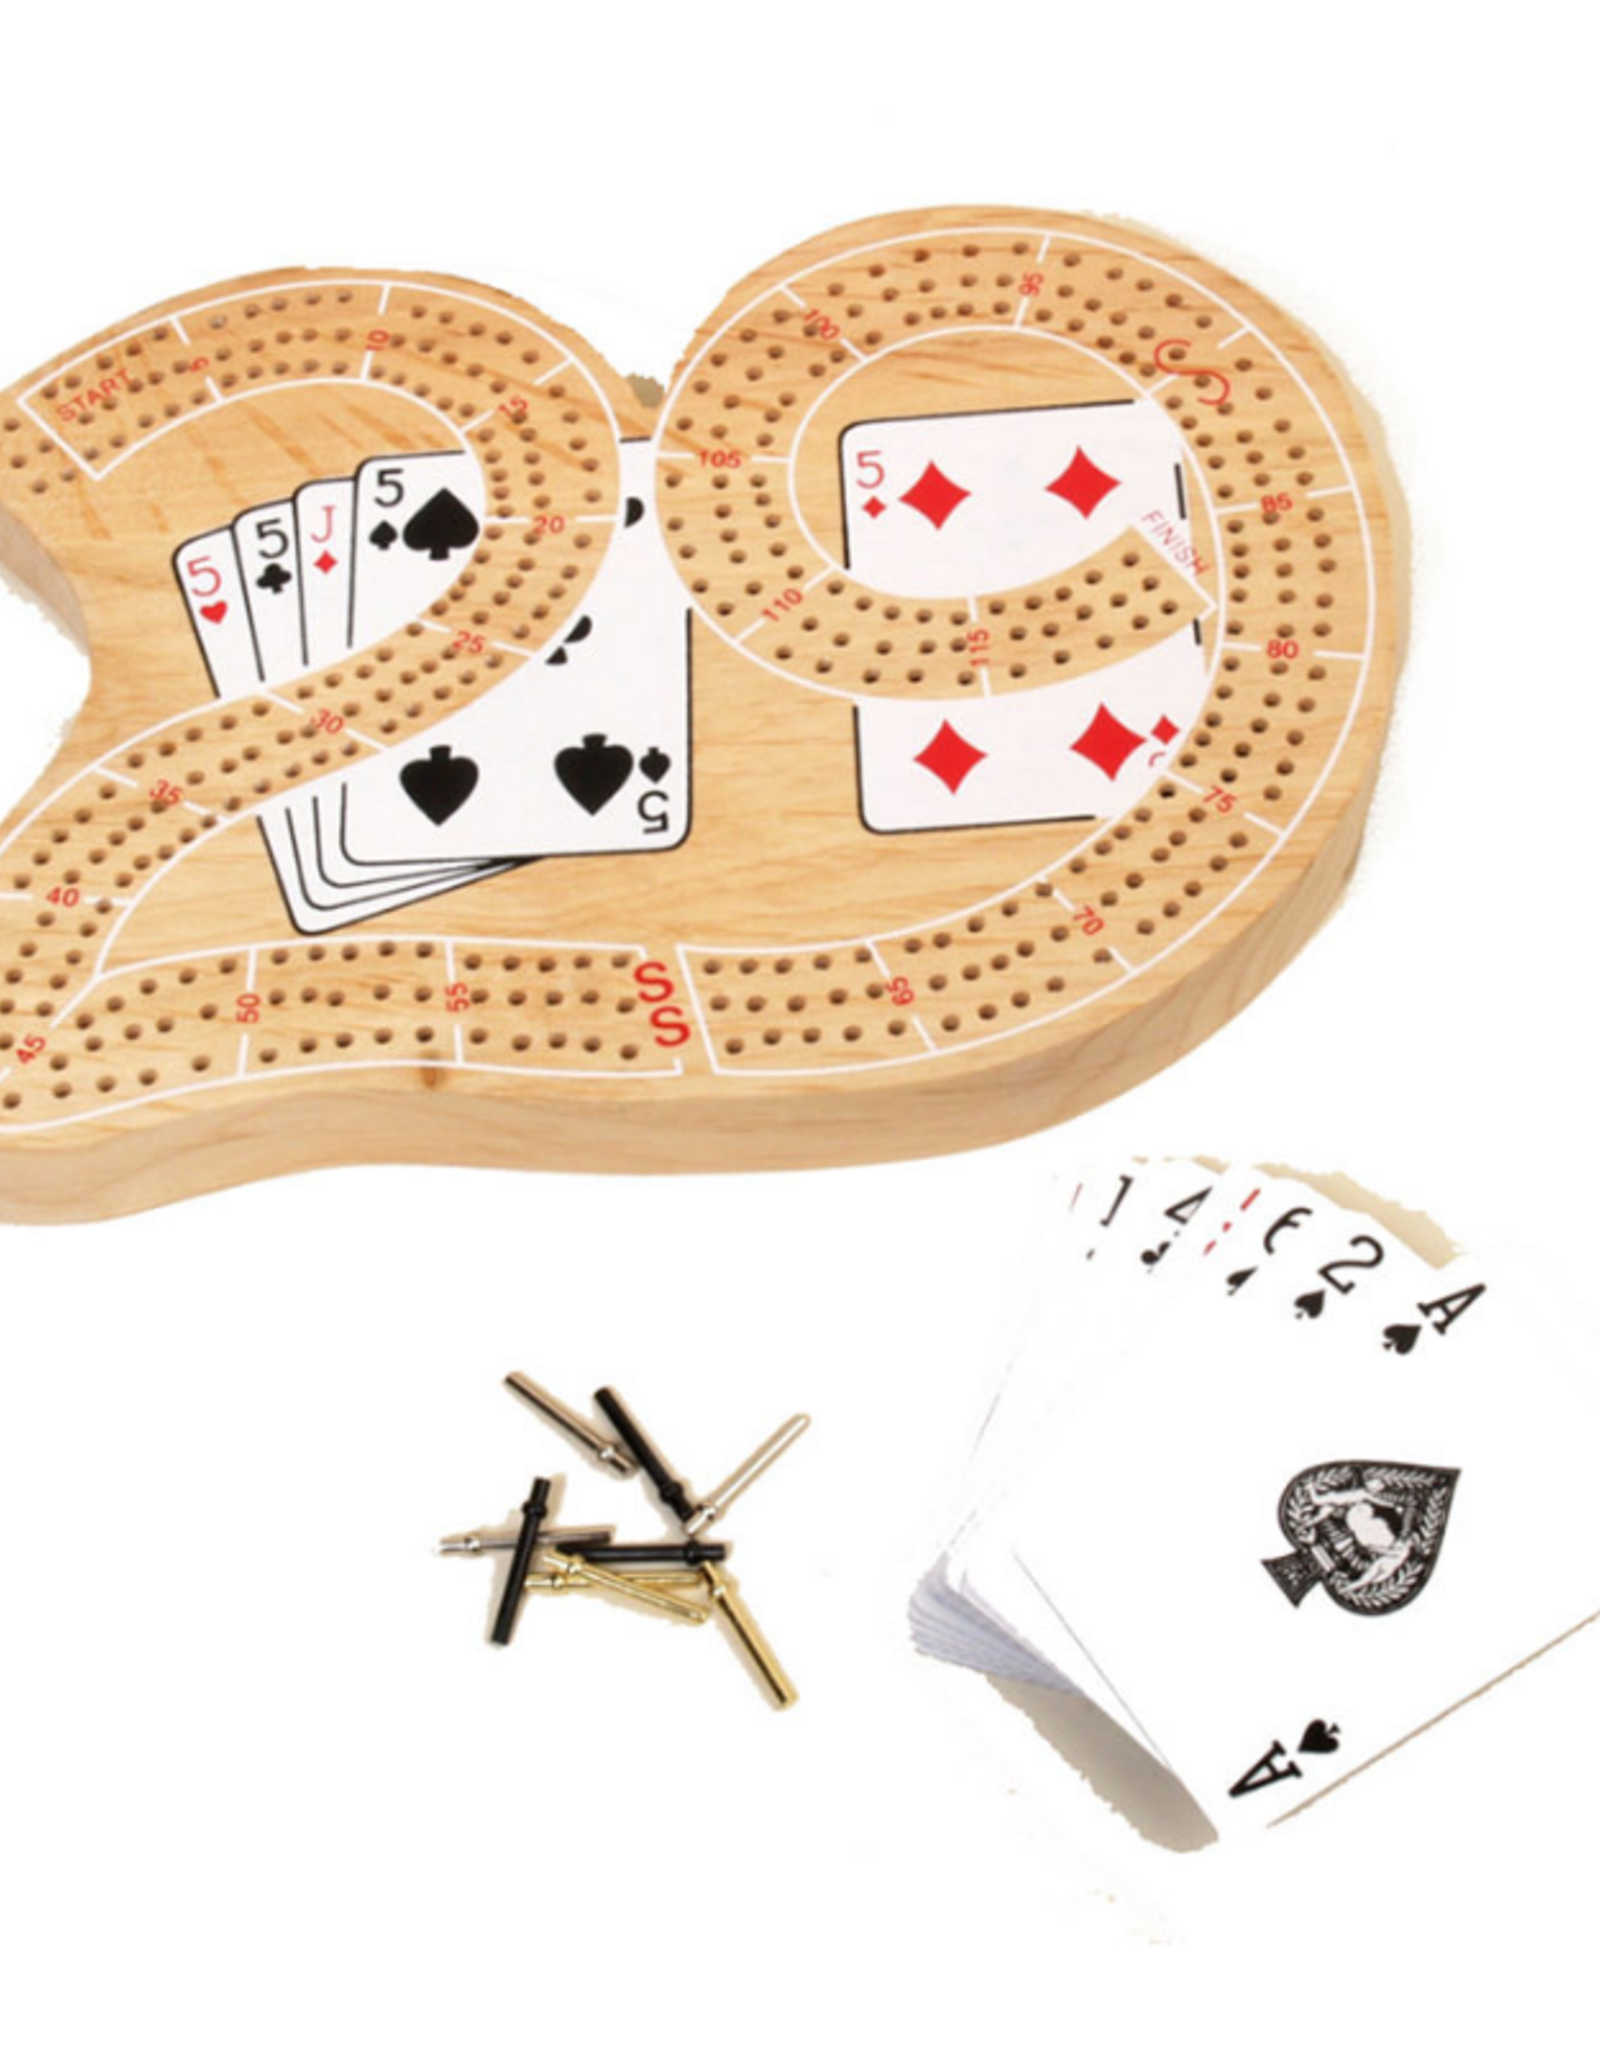 3 track 29 cribbage board w/ cards